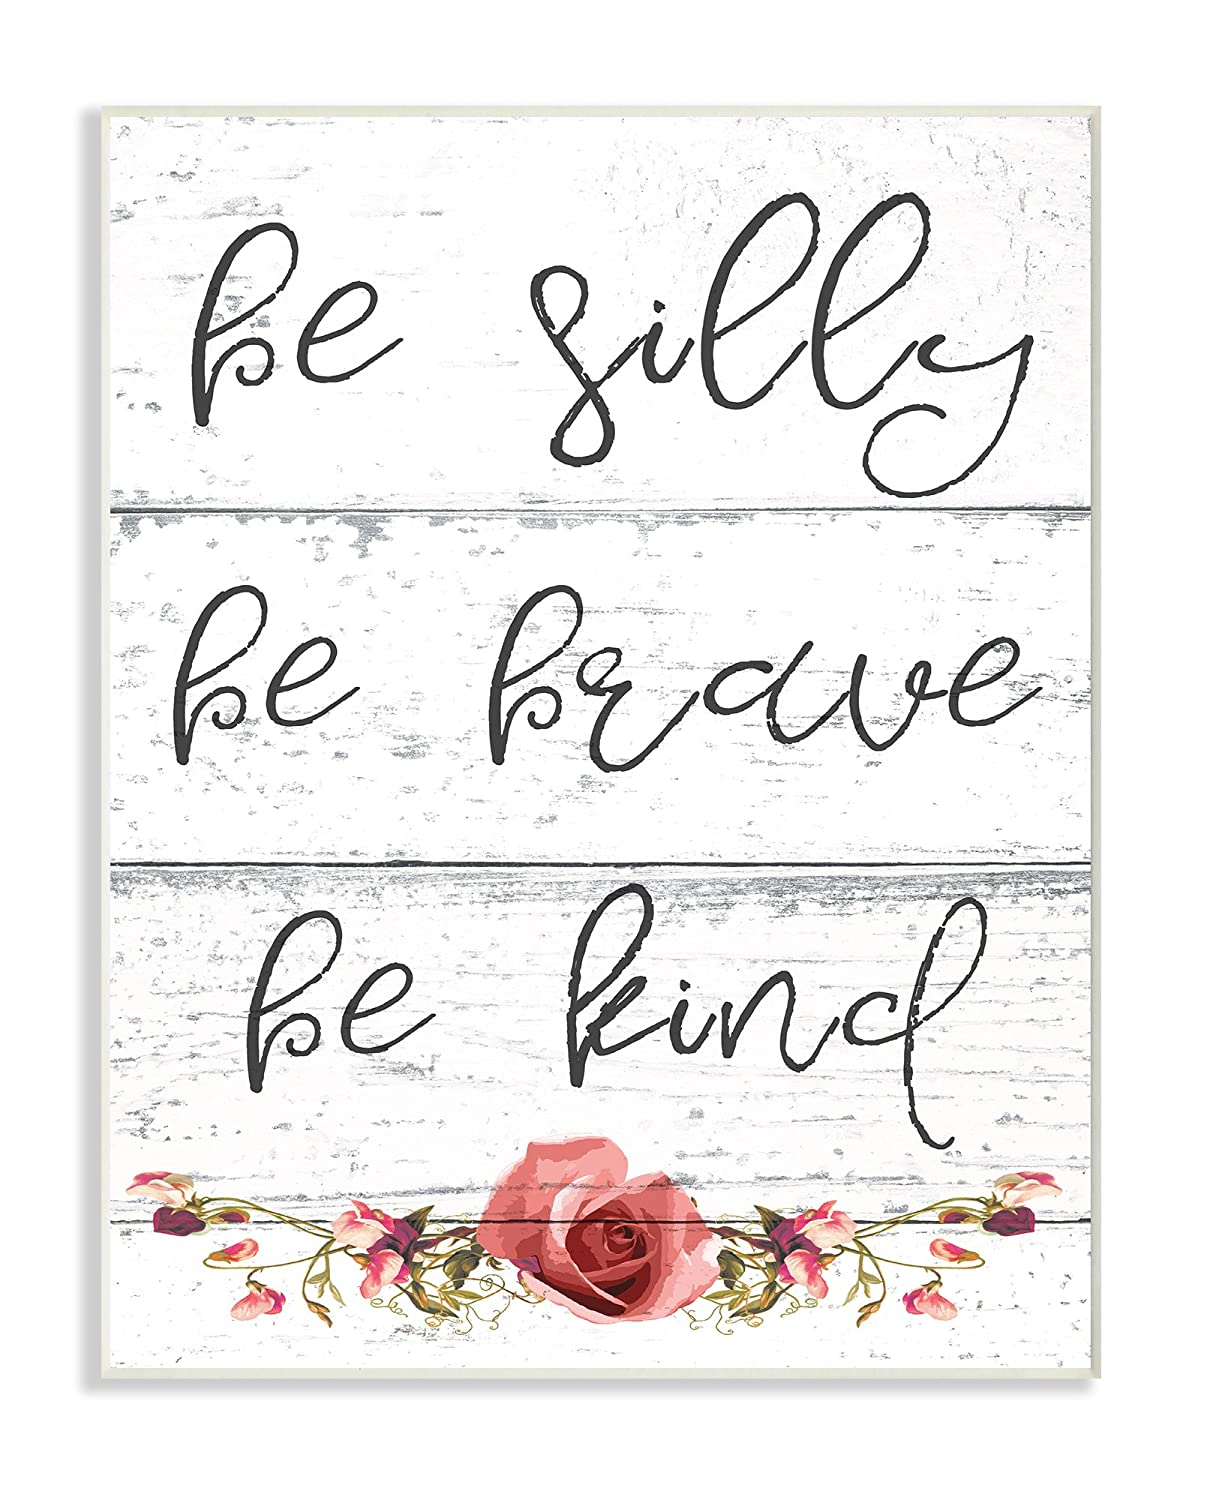 Stupell Industries Be Silly Brave and Kind Cursive Floral Typography Wall Plaque Art, 10 x 0.5 x 15, Proudly Made in USA mwp-340_wd_10x15